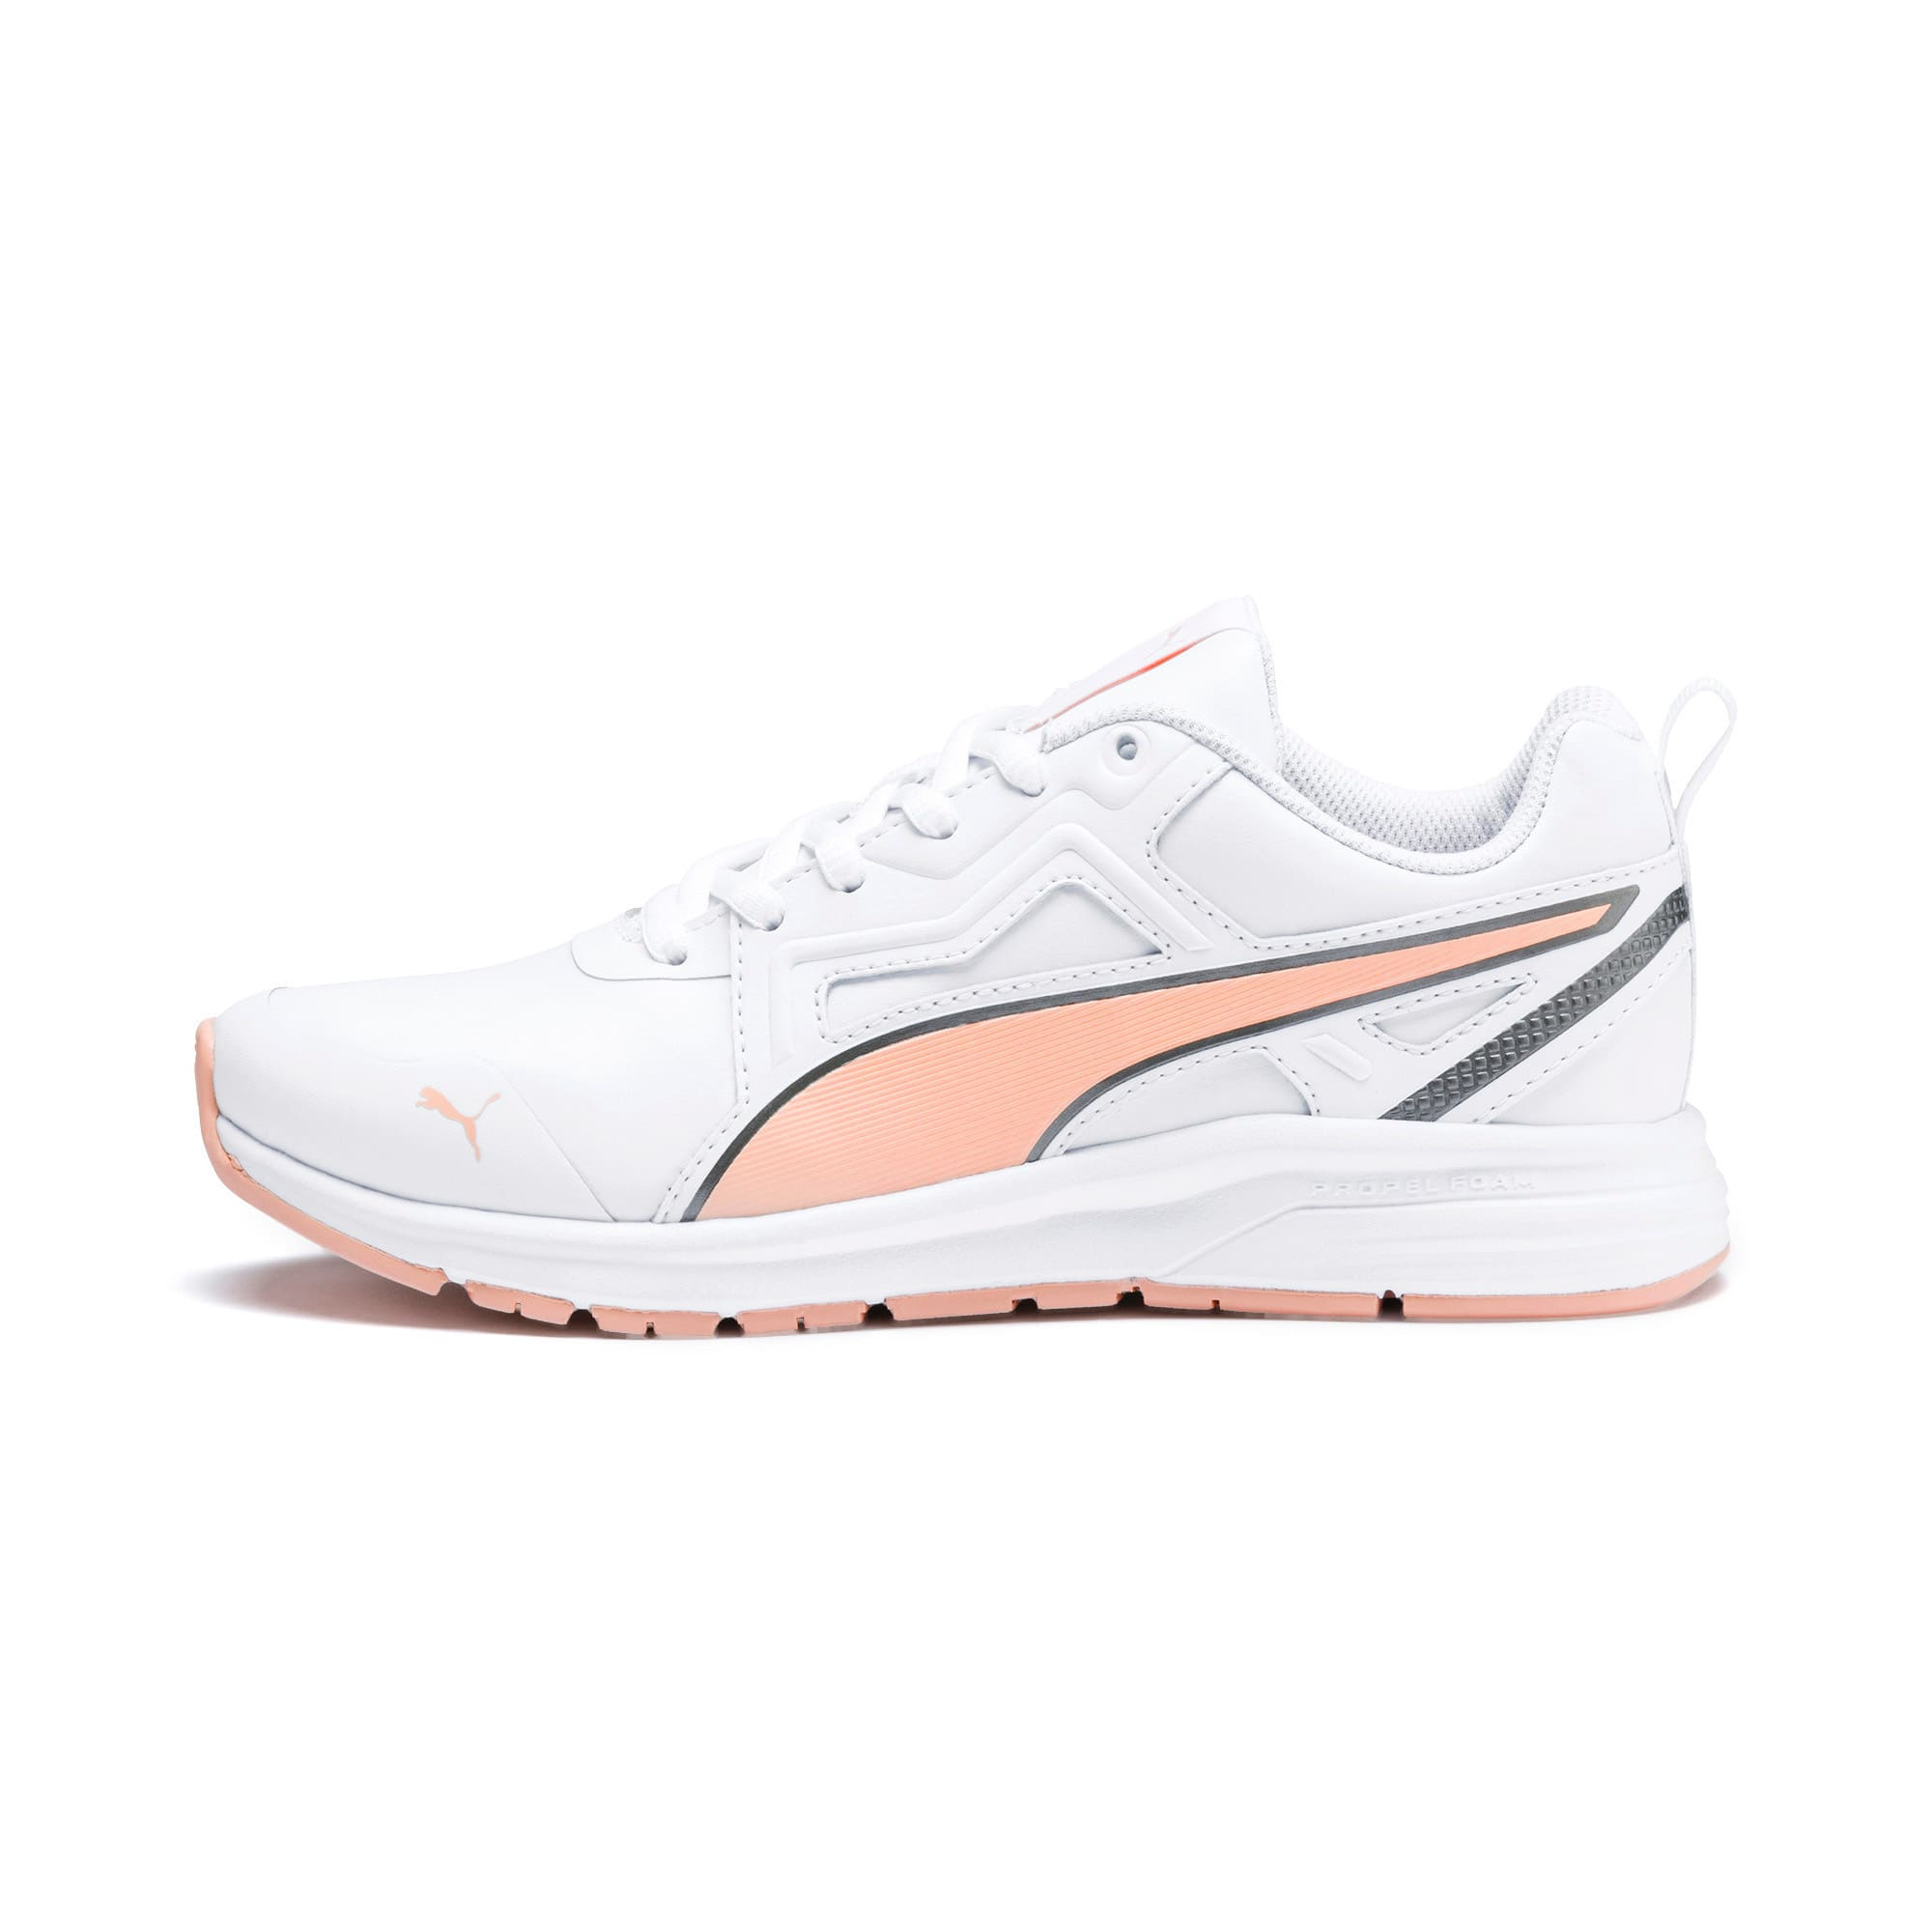 Thumbnail 1 of Pure Jogger Youth Trainers, White-Peach Parfait-A Silver, medium-IND